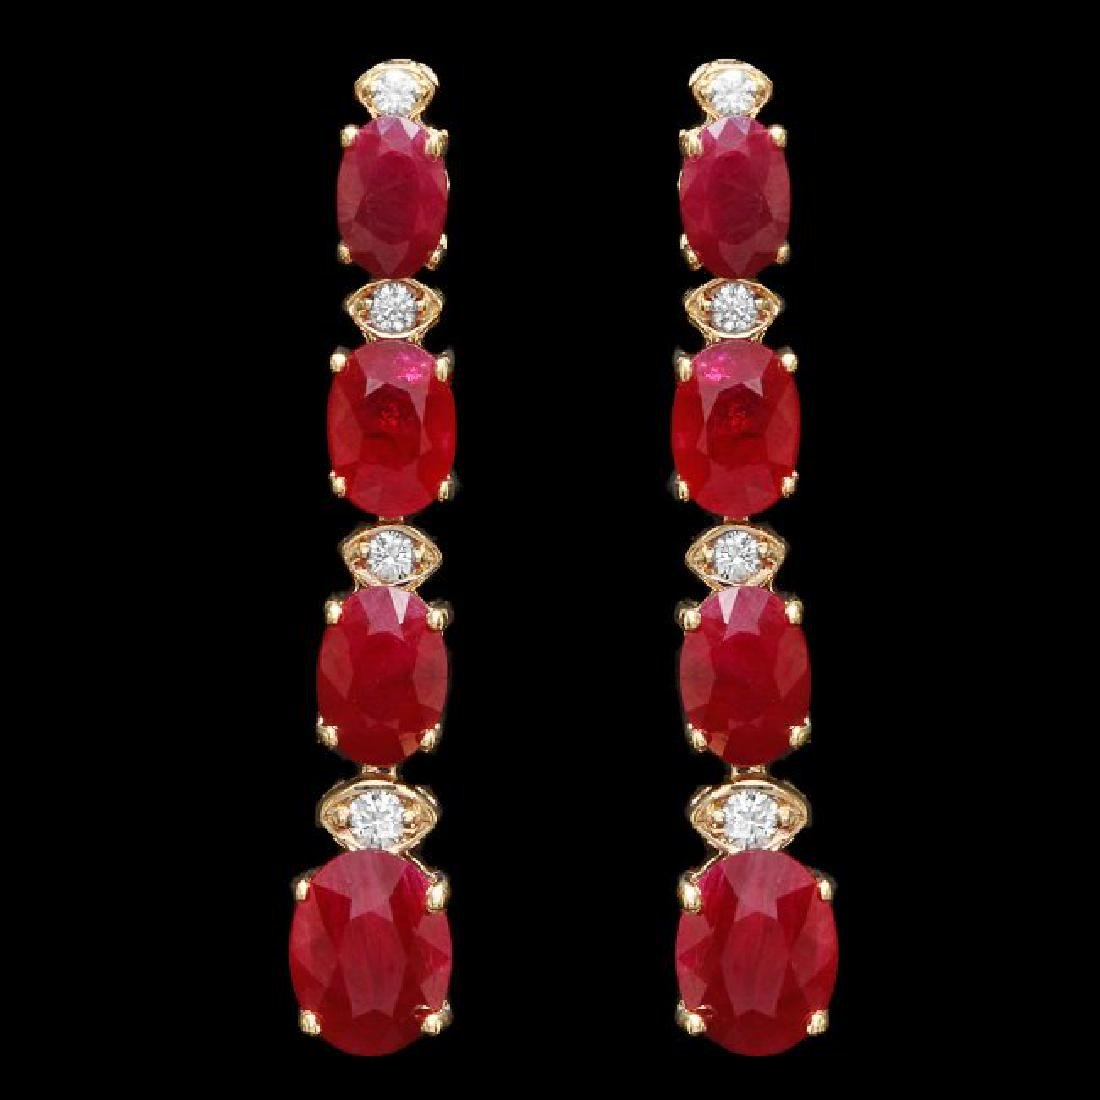 14k Gold 9.00ct Ruby 0.25ct Diamond Earrings